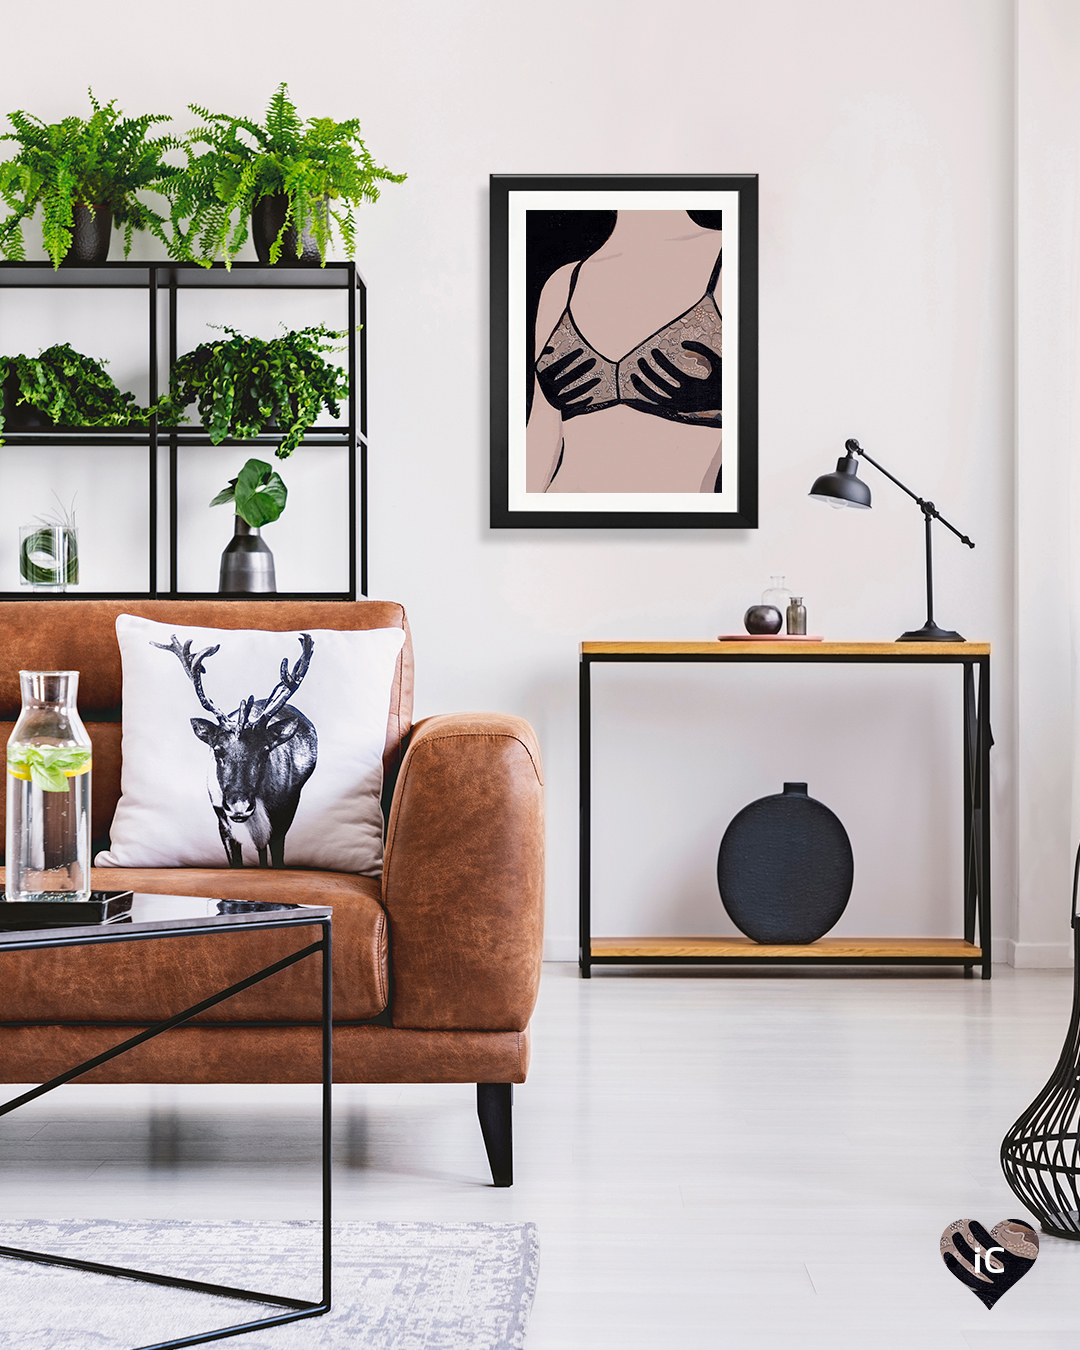 Art print showing a female chest wearing a bra with black hands covering the boobs in a room with a brown leather sofa, plants, and a black vase